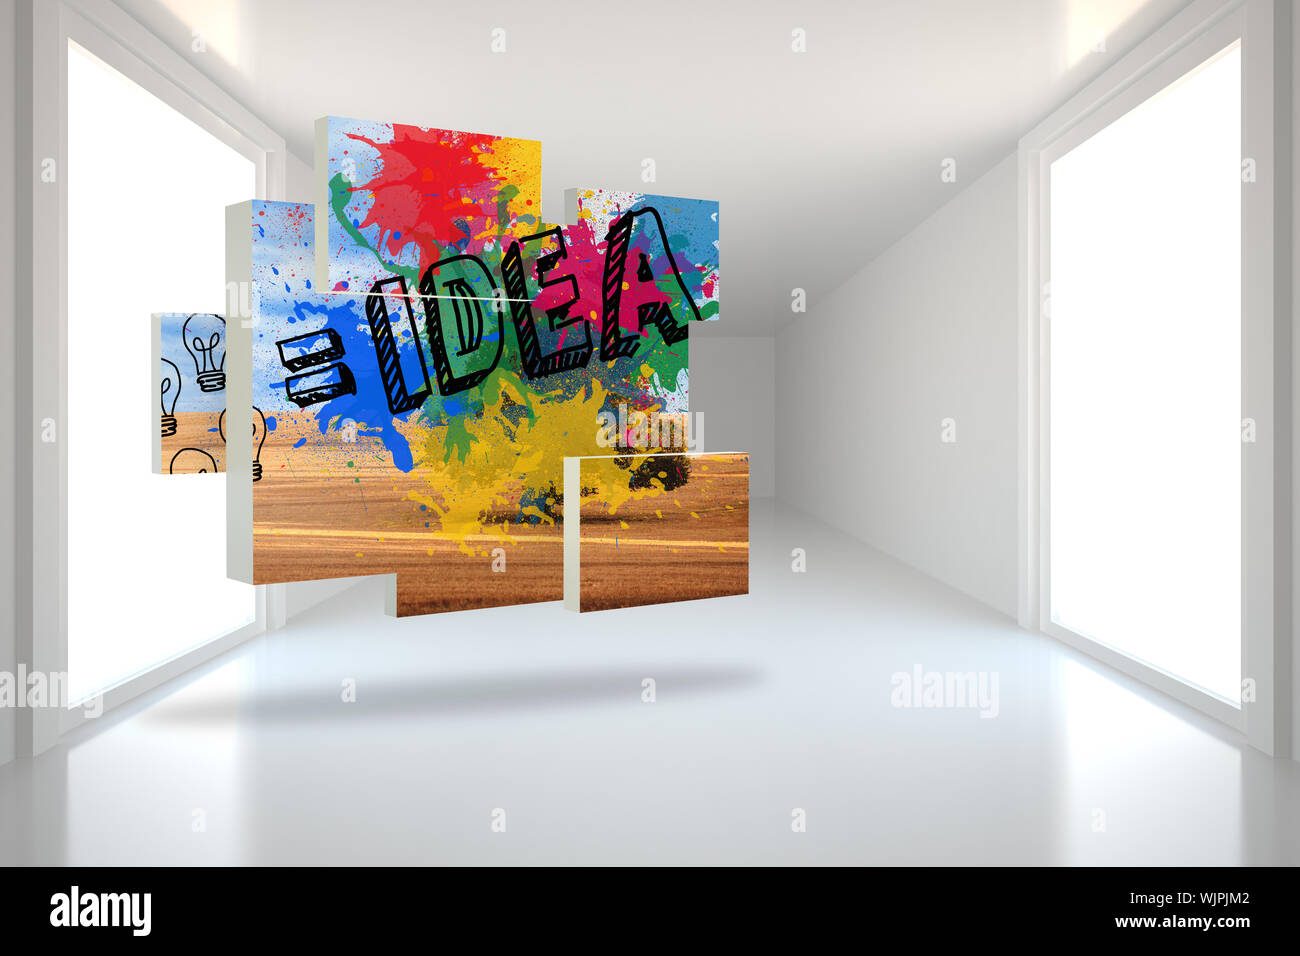 Idea on abstract screen against bright hall with windows Stock Photo